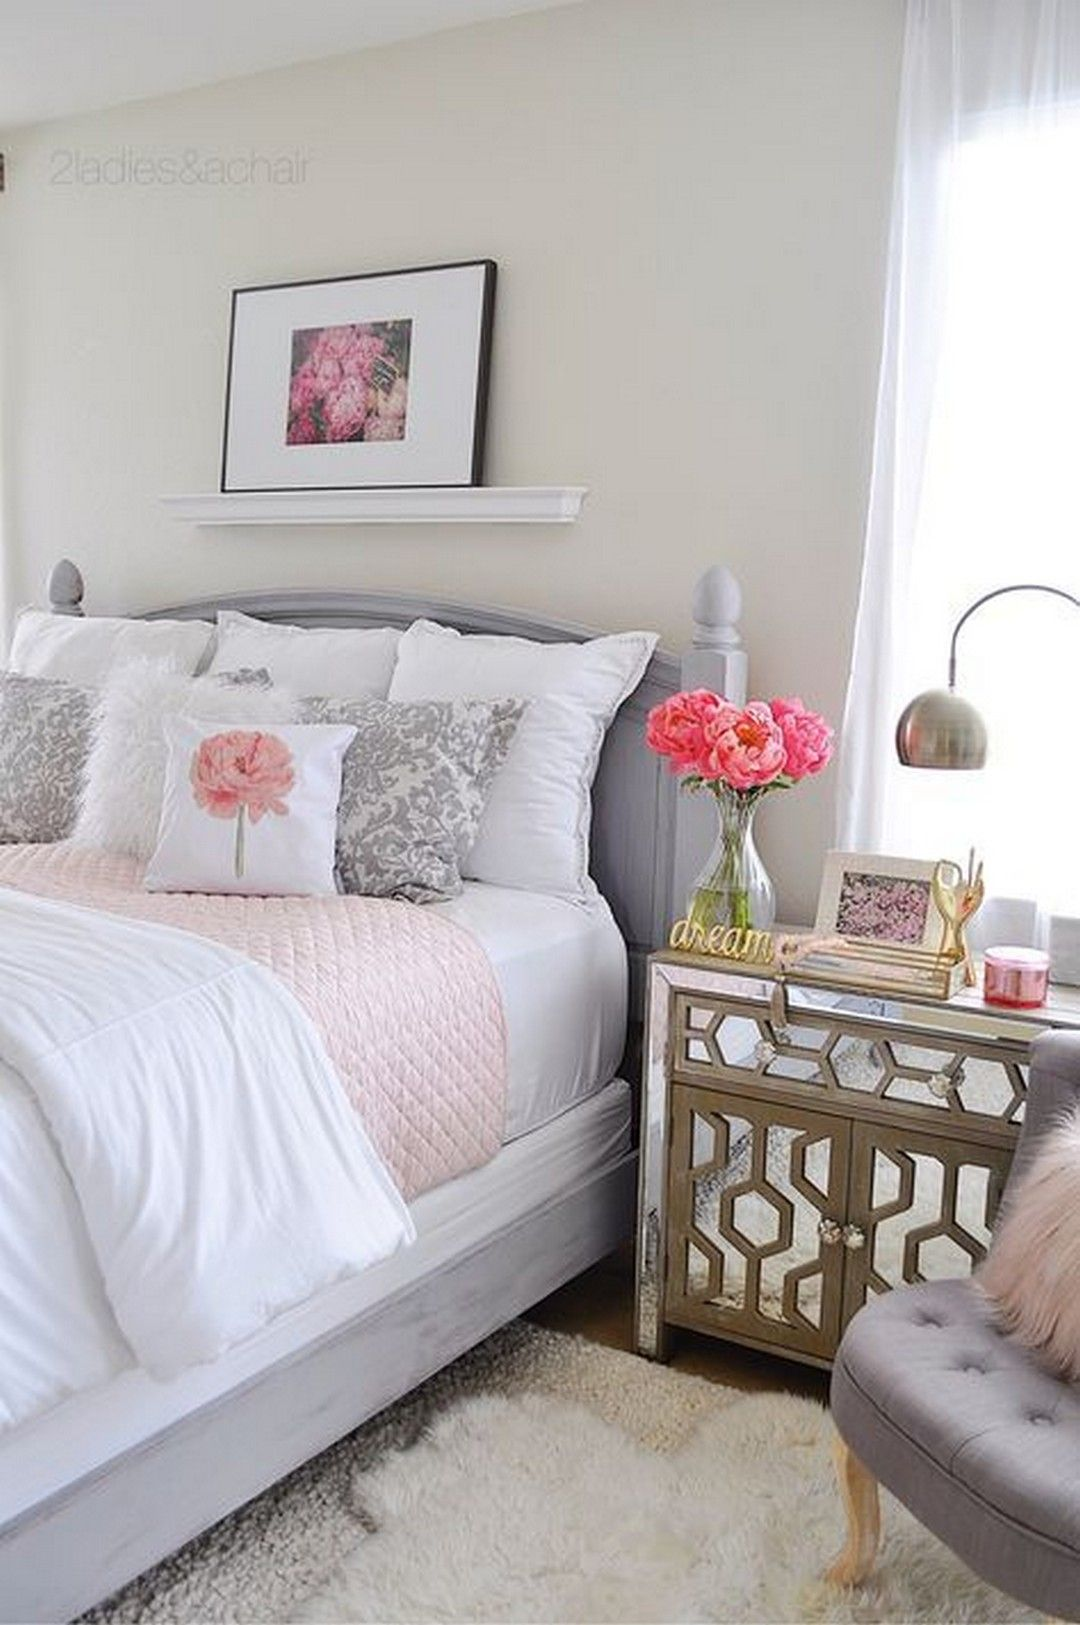 How To Modify Your Bedroom With These Super Beautiful